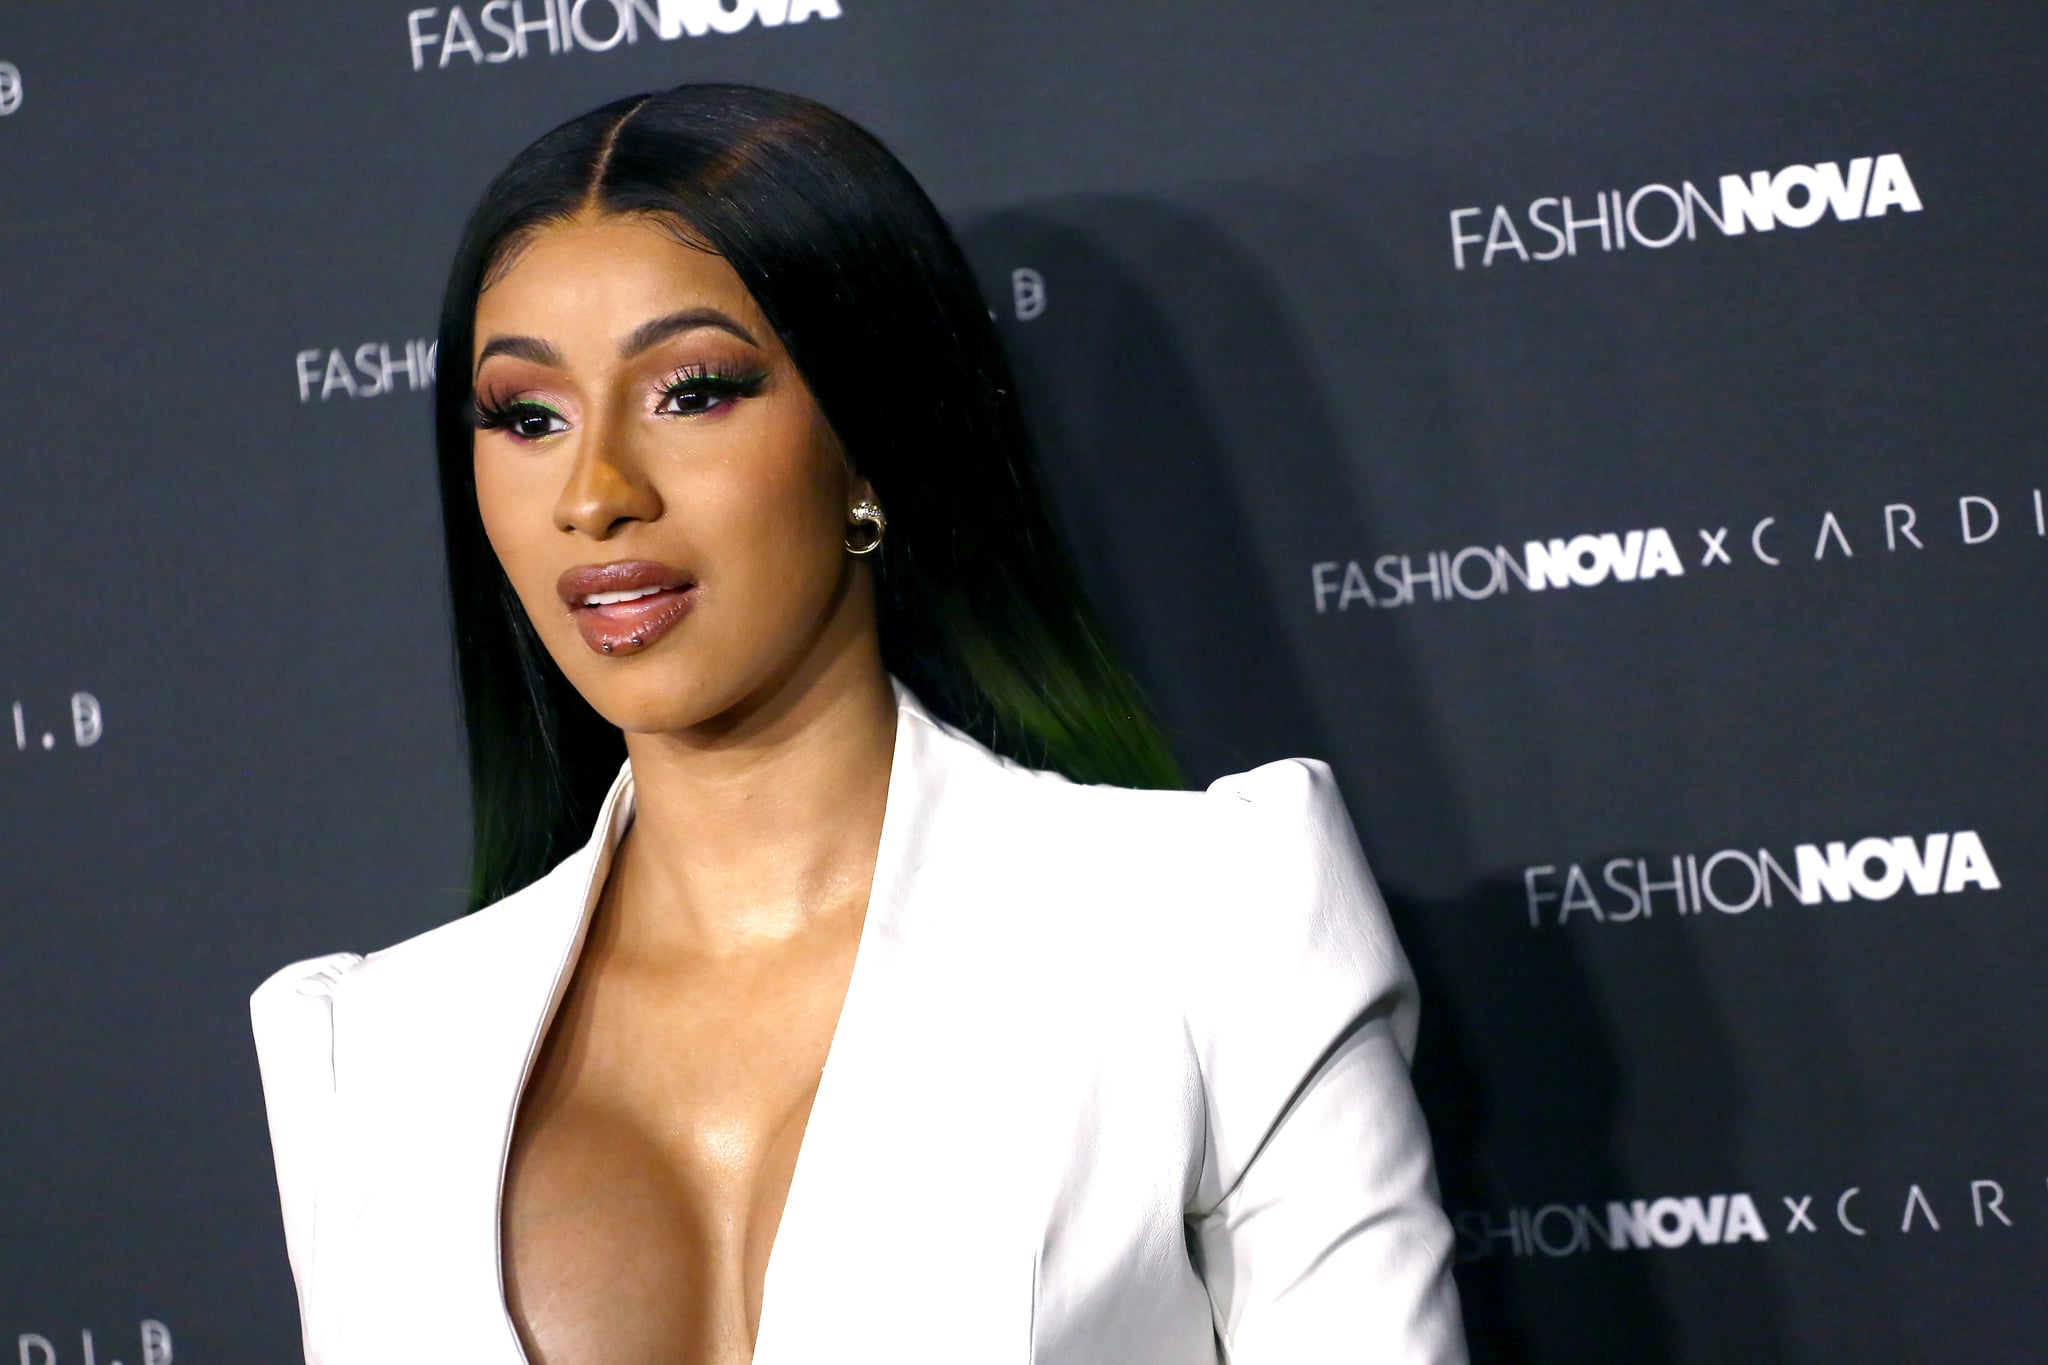 LOS ANGELES, CA - MAY 08:  Cardi B arrives as Fashion Nova Presents: Party With Cardi at Hollywood Palladium on May 8, 2019 in Los Angeles, California.  (Photo by Tommaso Boddi/Getty Images for Fashion Nova)